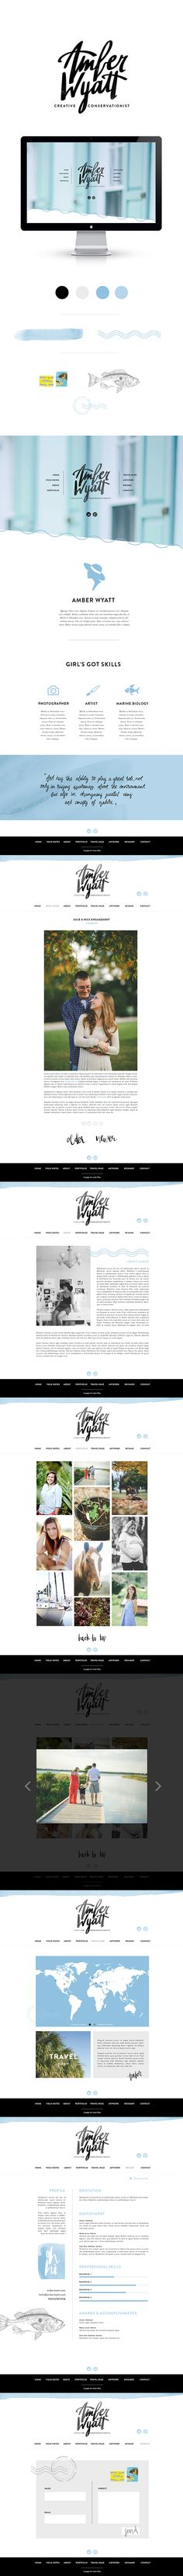 Website Redesigns - Cocorrina by Corina Nika